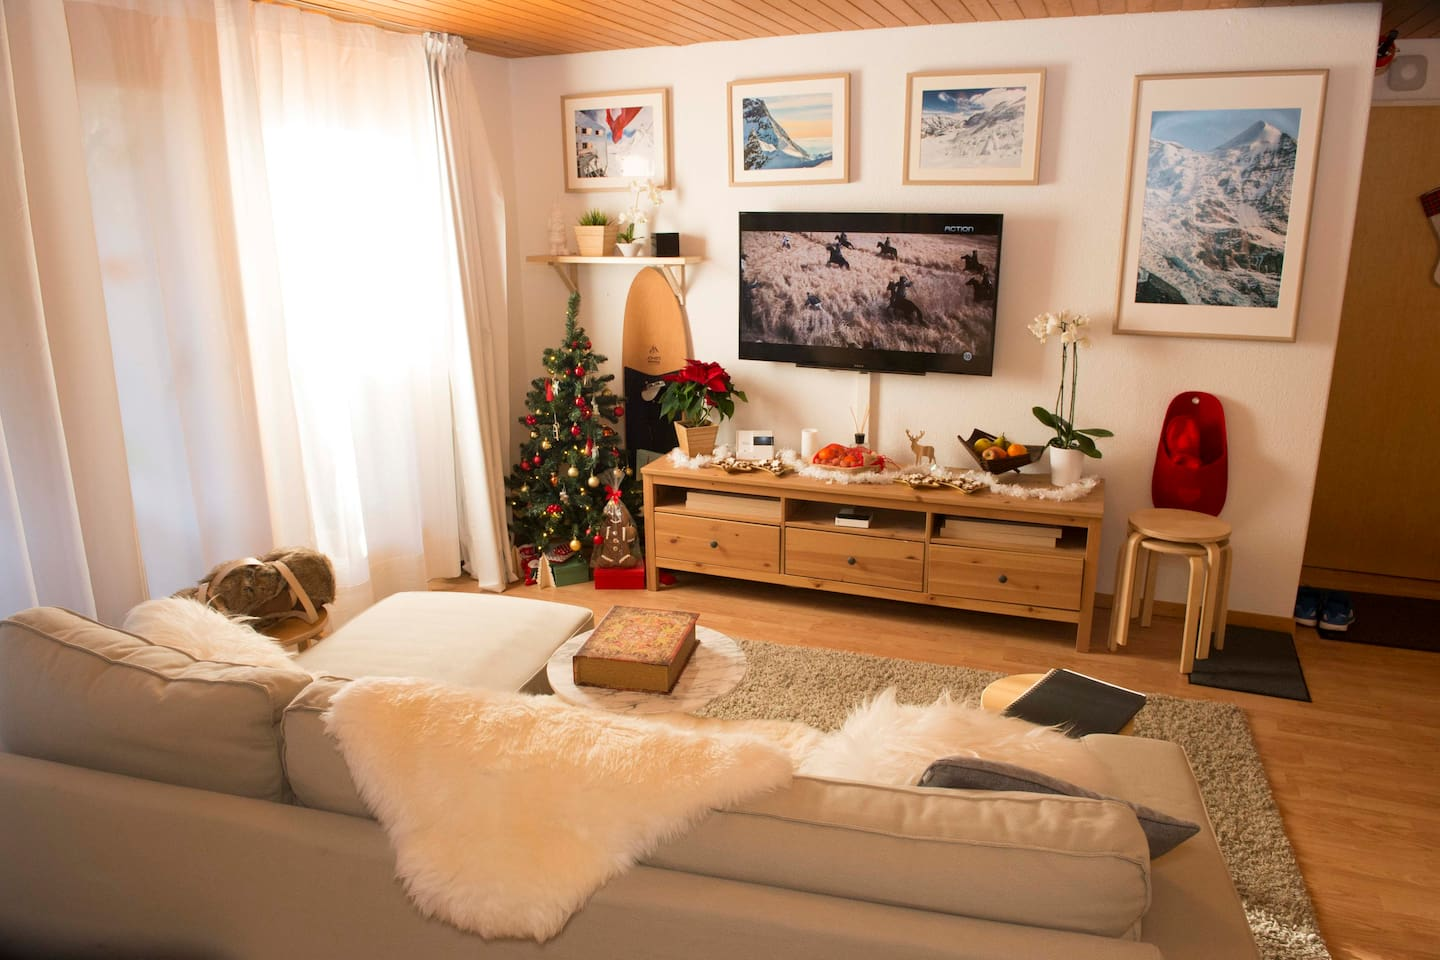 Cozy living room with comfortable sofa